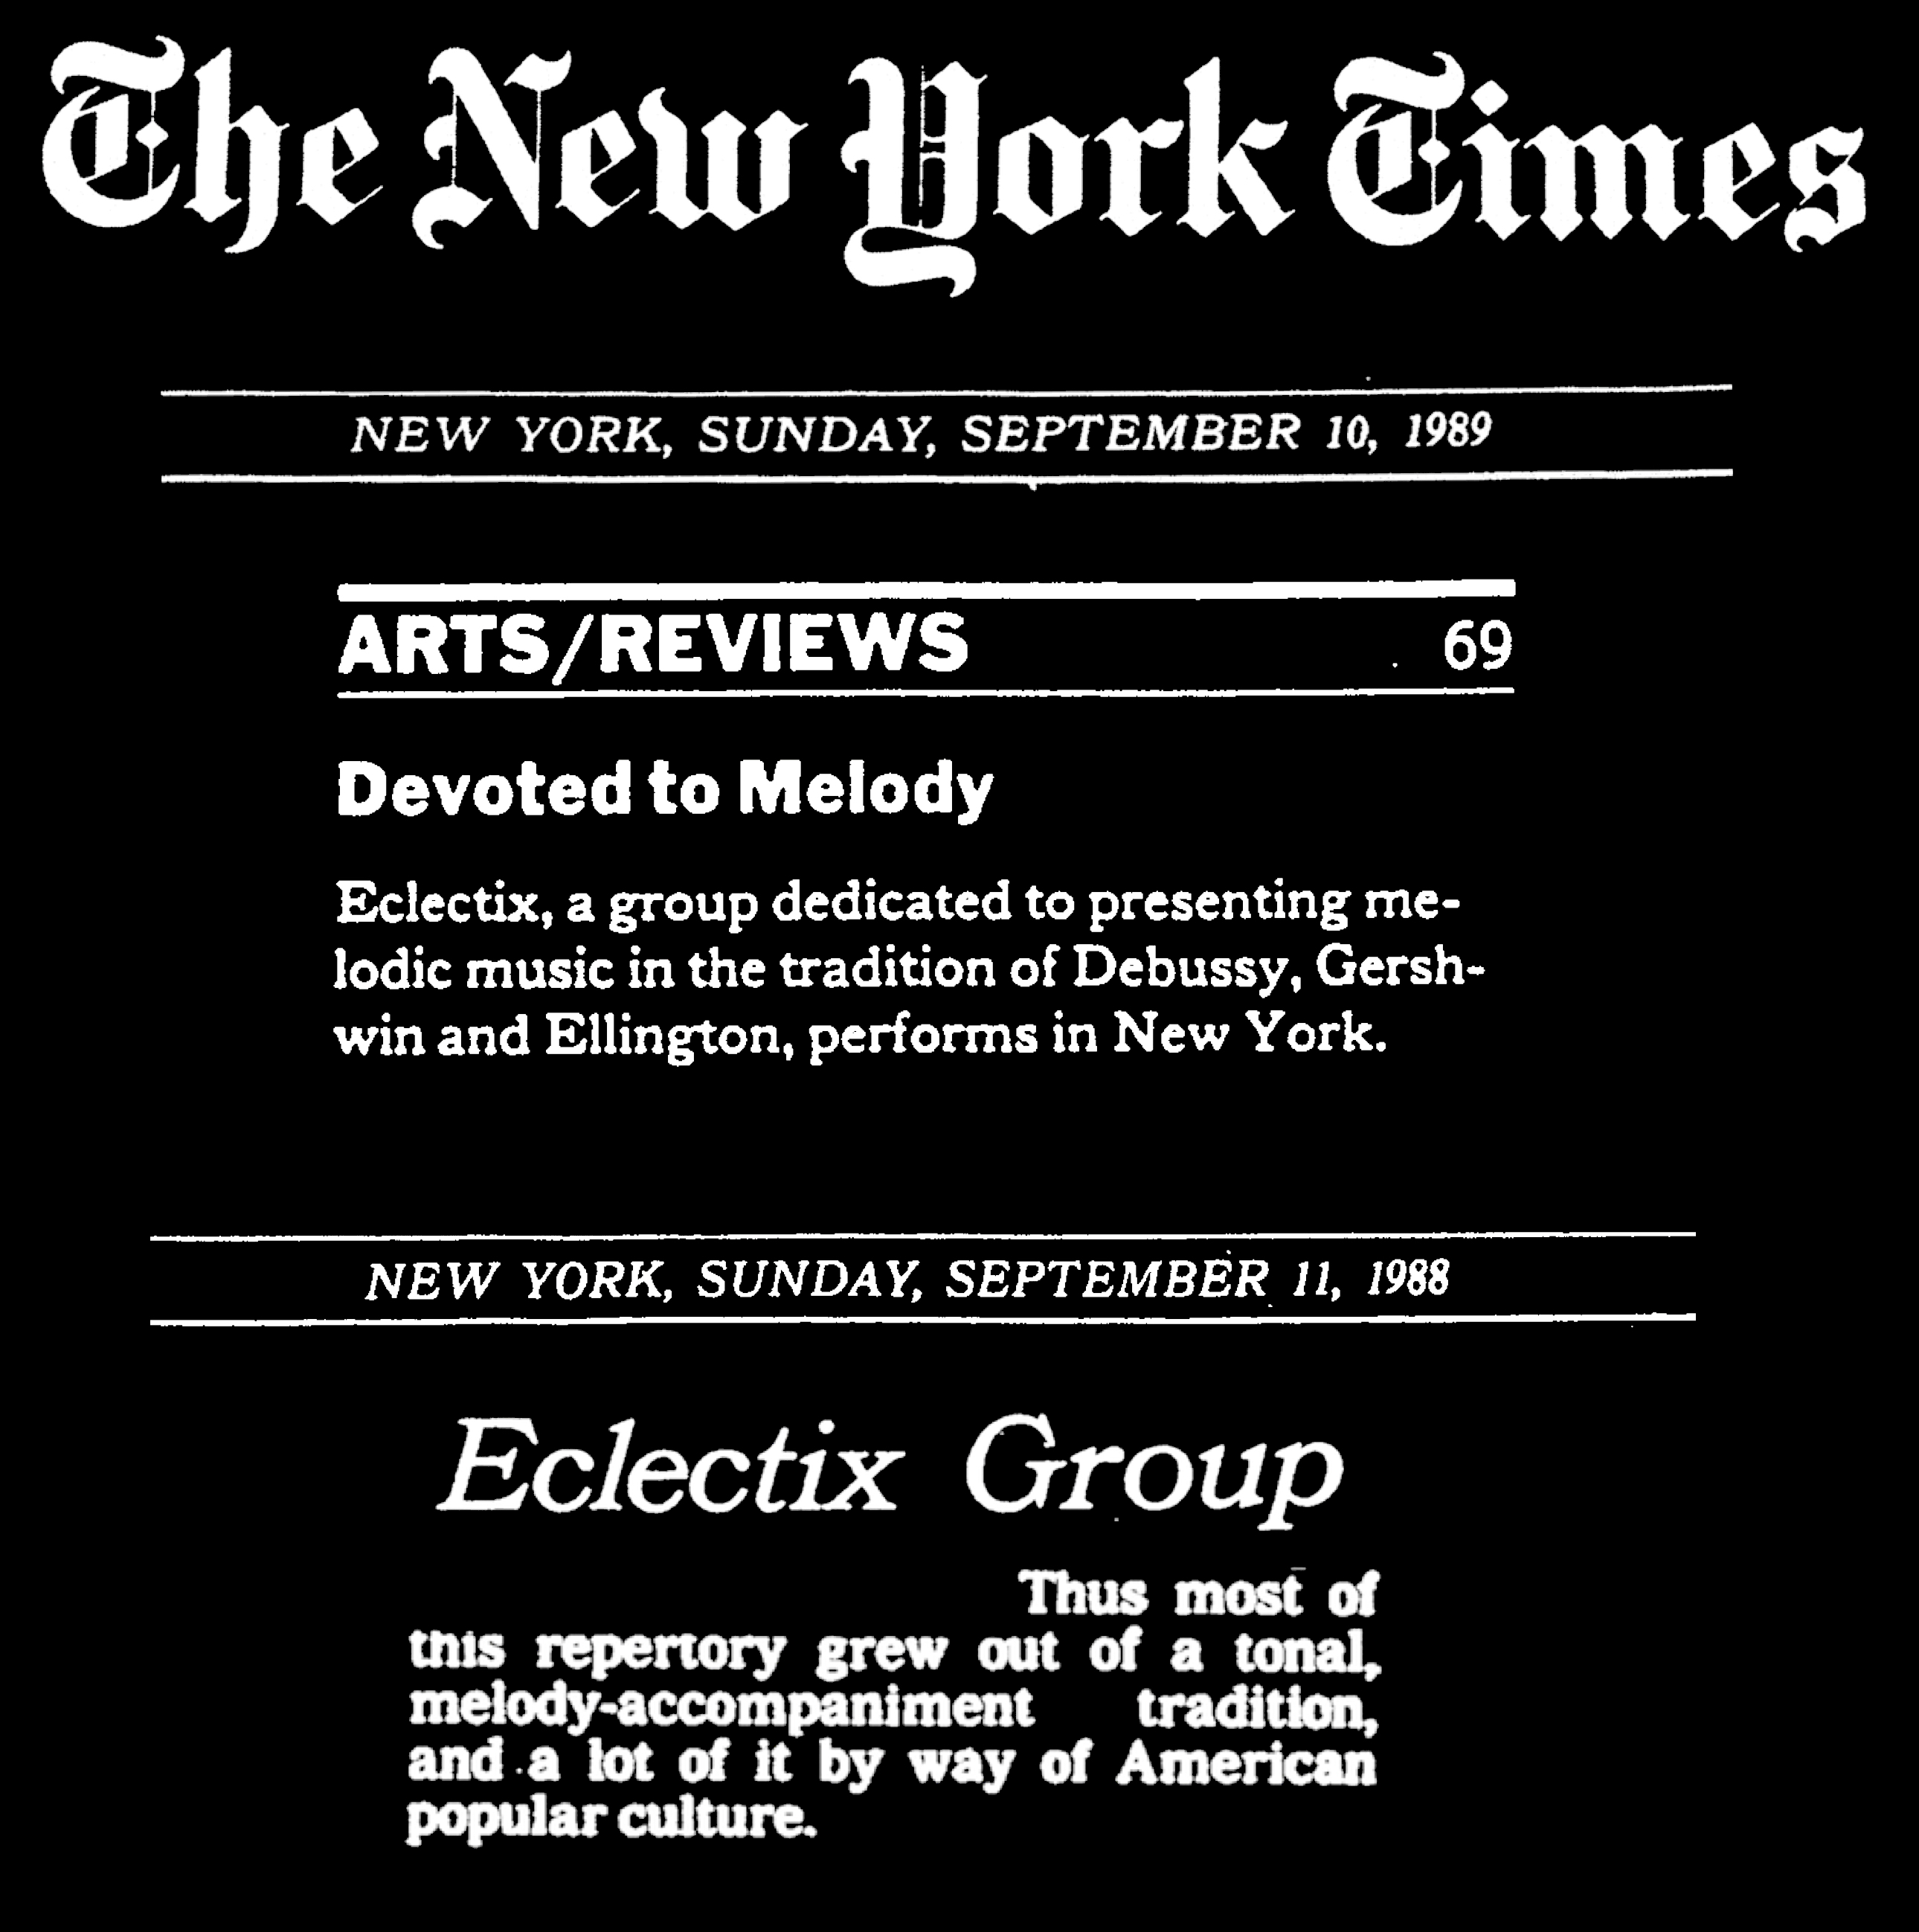 New York Times, 2 quotes from reviews